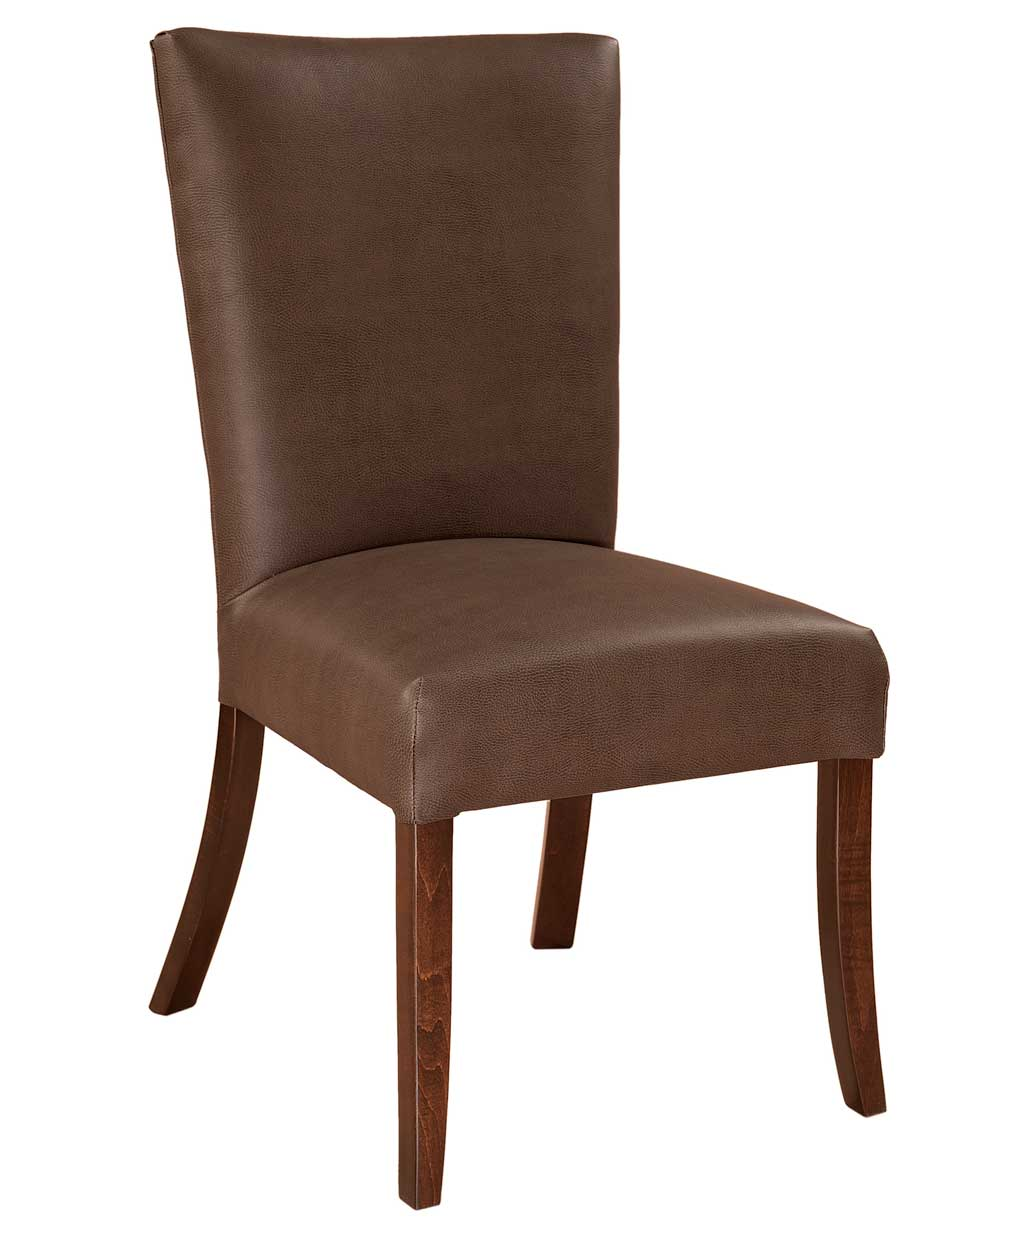 Poly Lumber Outdoor Furniture Home / Shop / Dining / Dining Chairs / Formal Dining Chairs